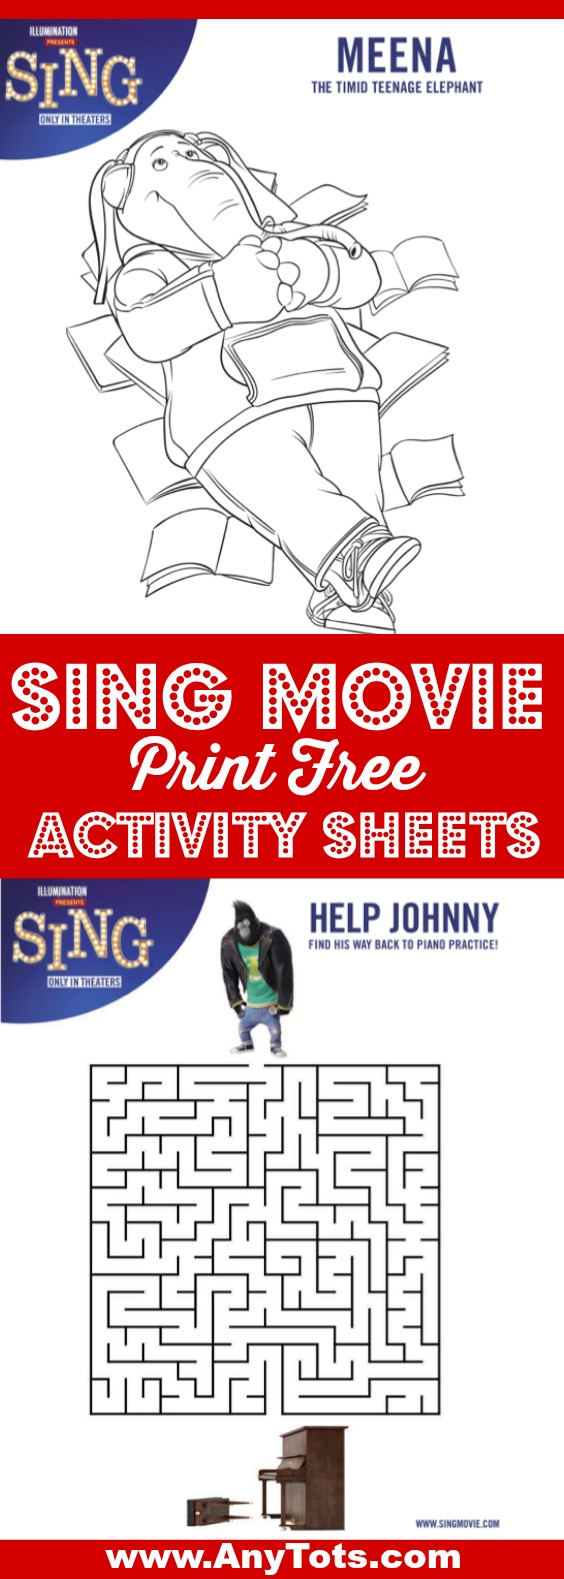 sing free printable activity sheets